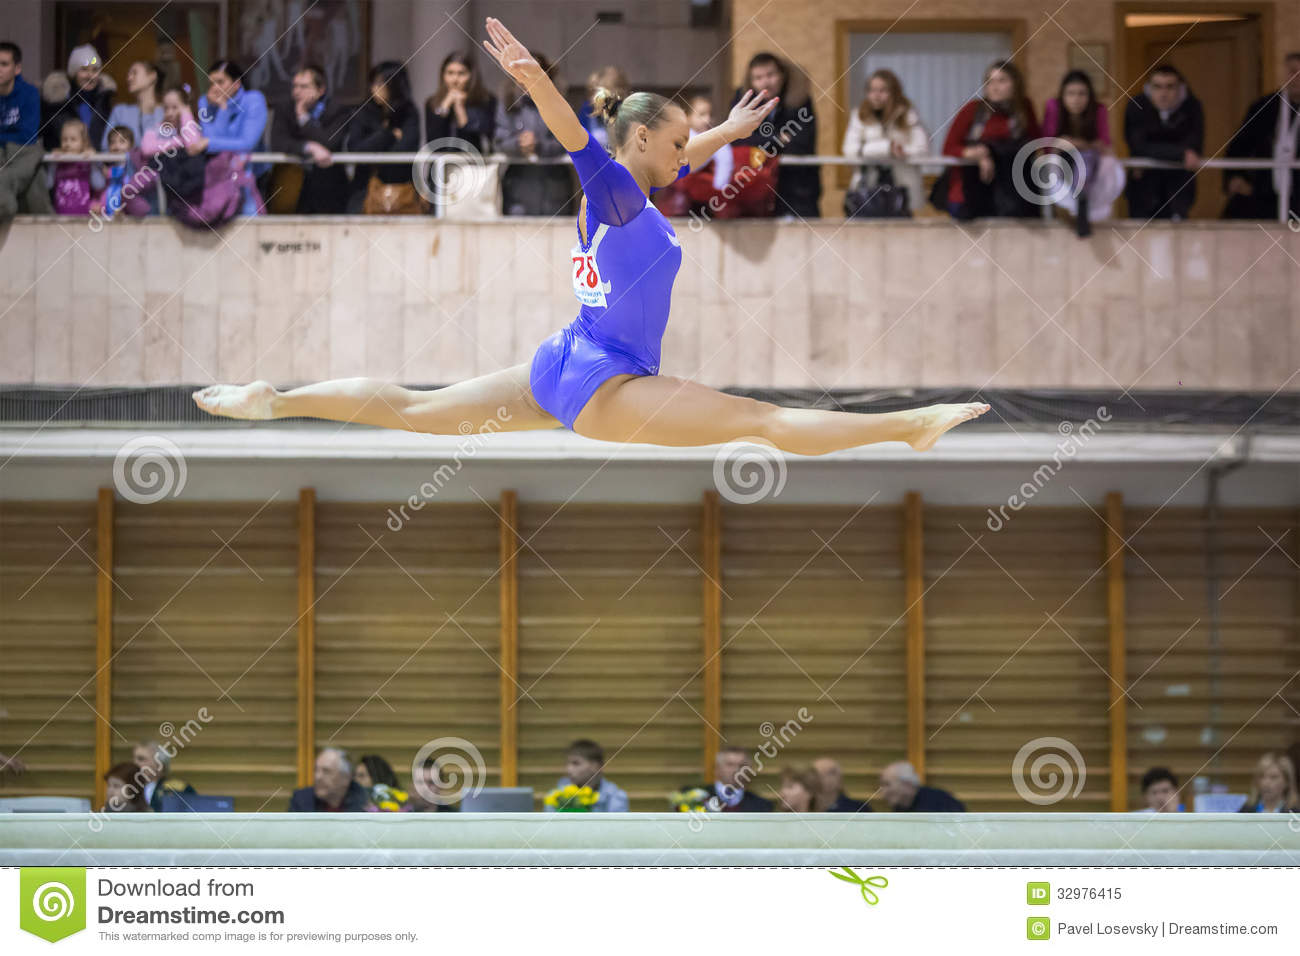 voronin cup gymnastics meet